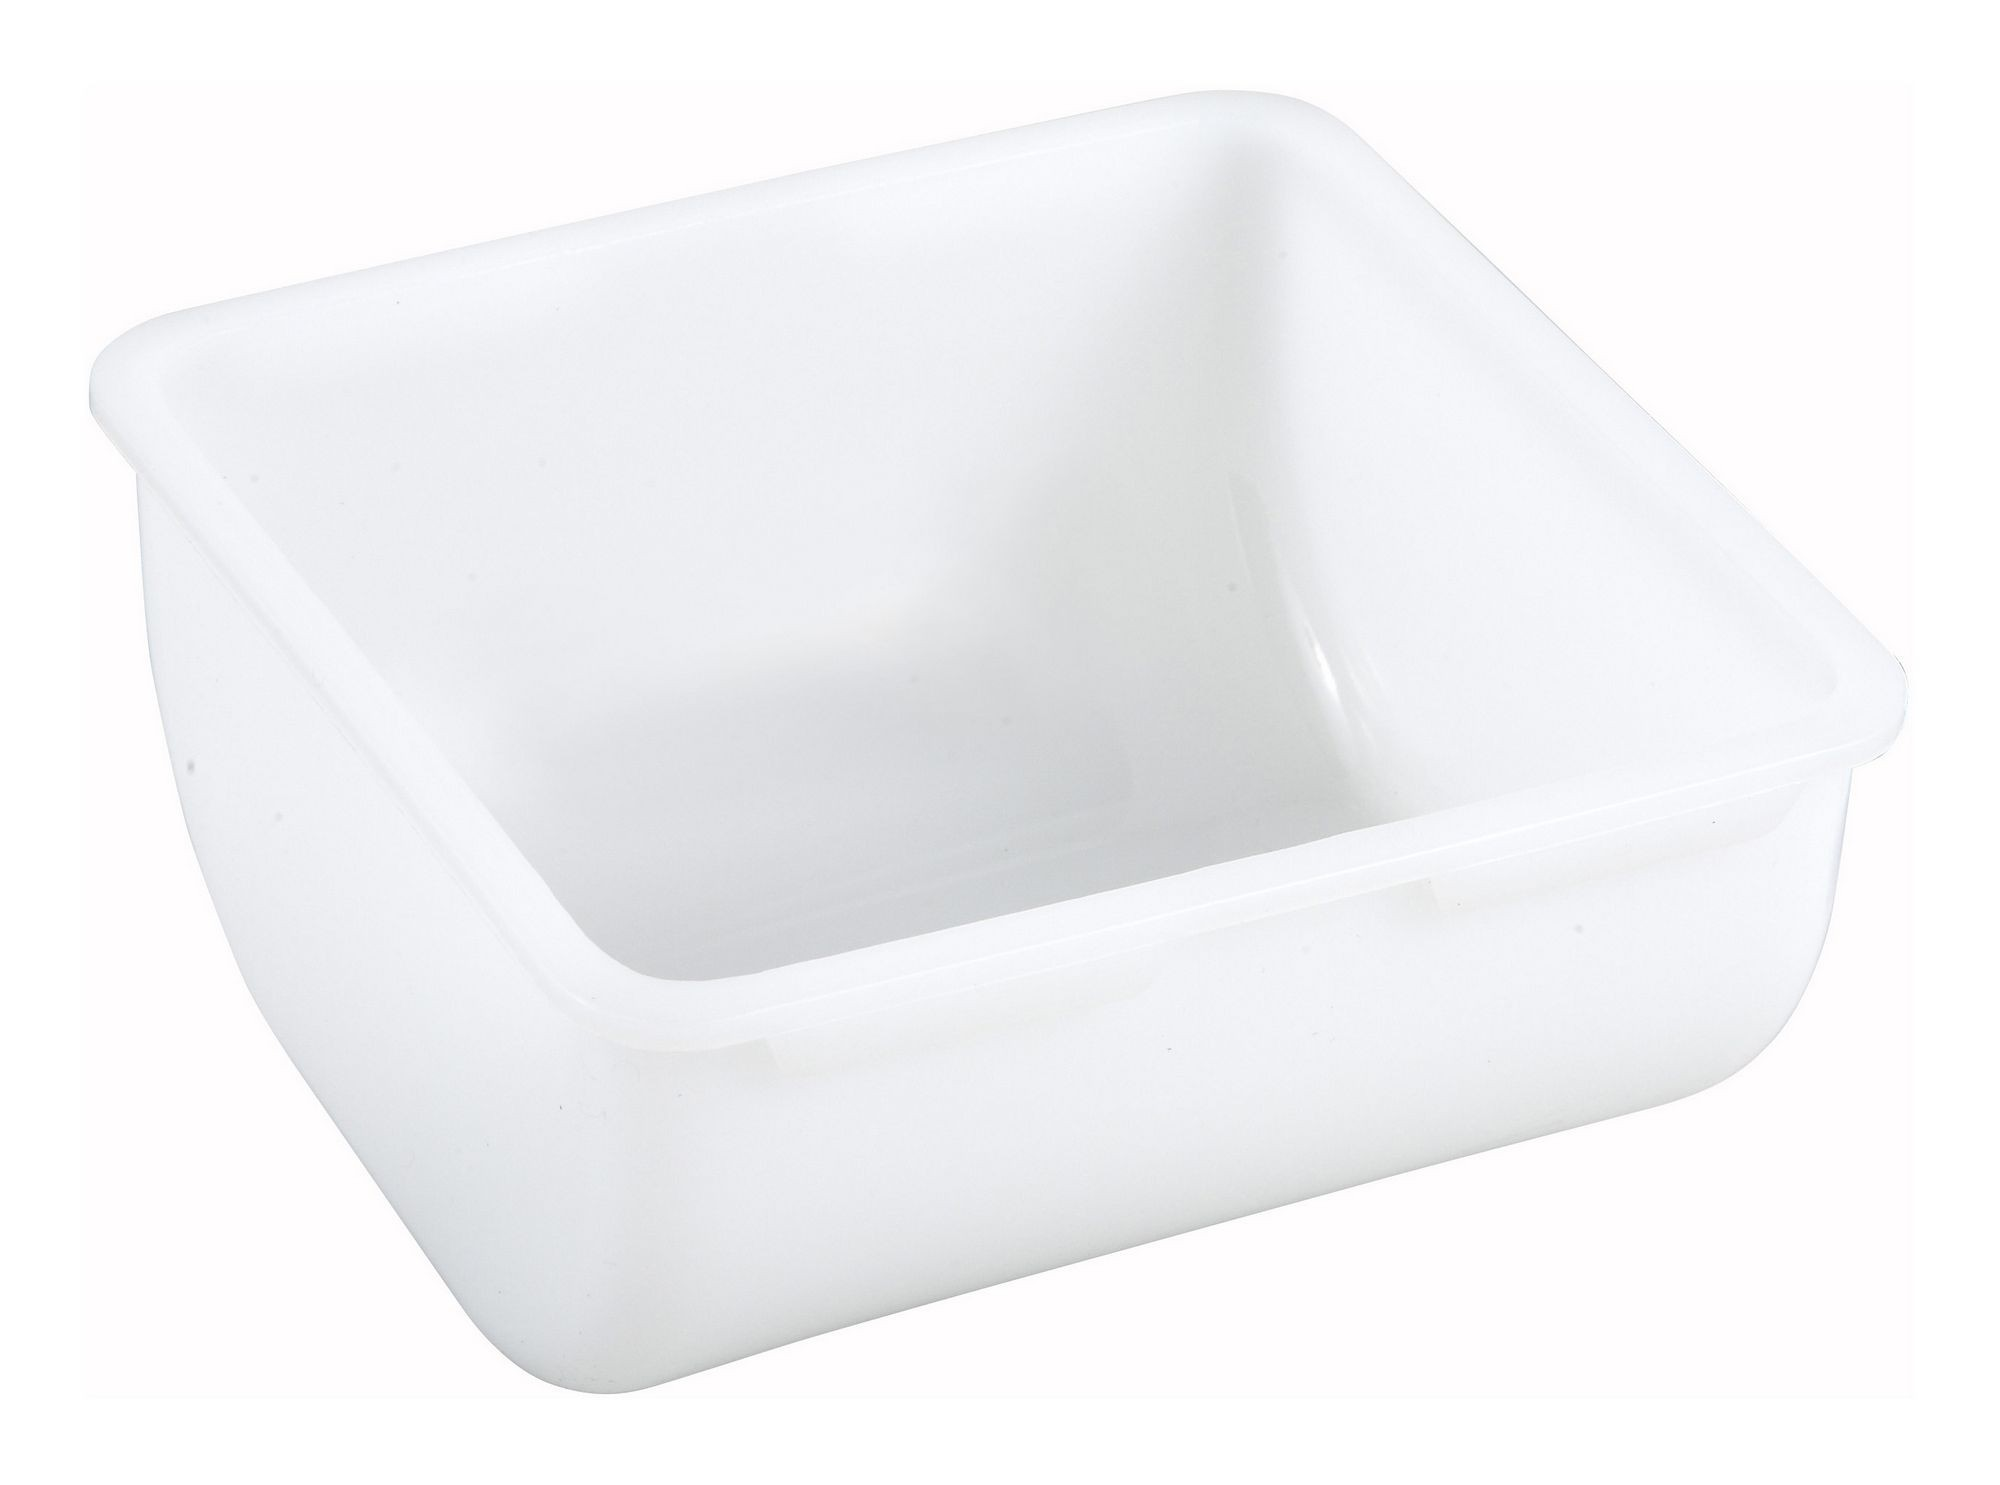 Plastic 1-Quart Insert For Condiment Caddy